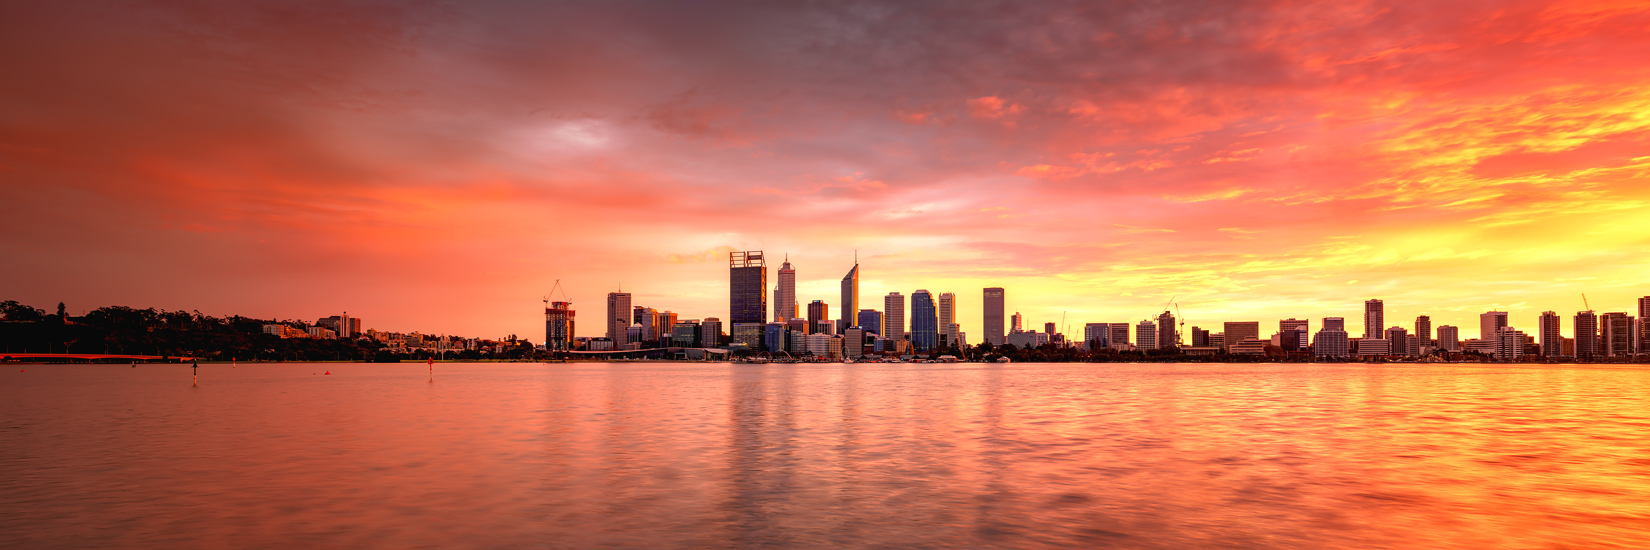 Perth Sunrise, July 2016